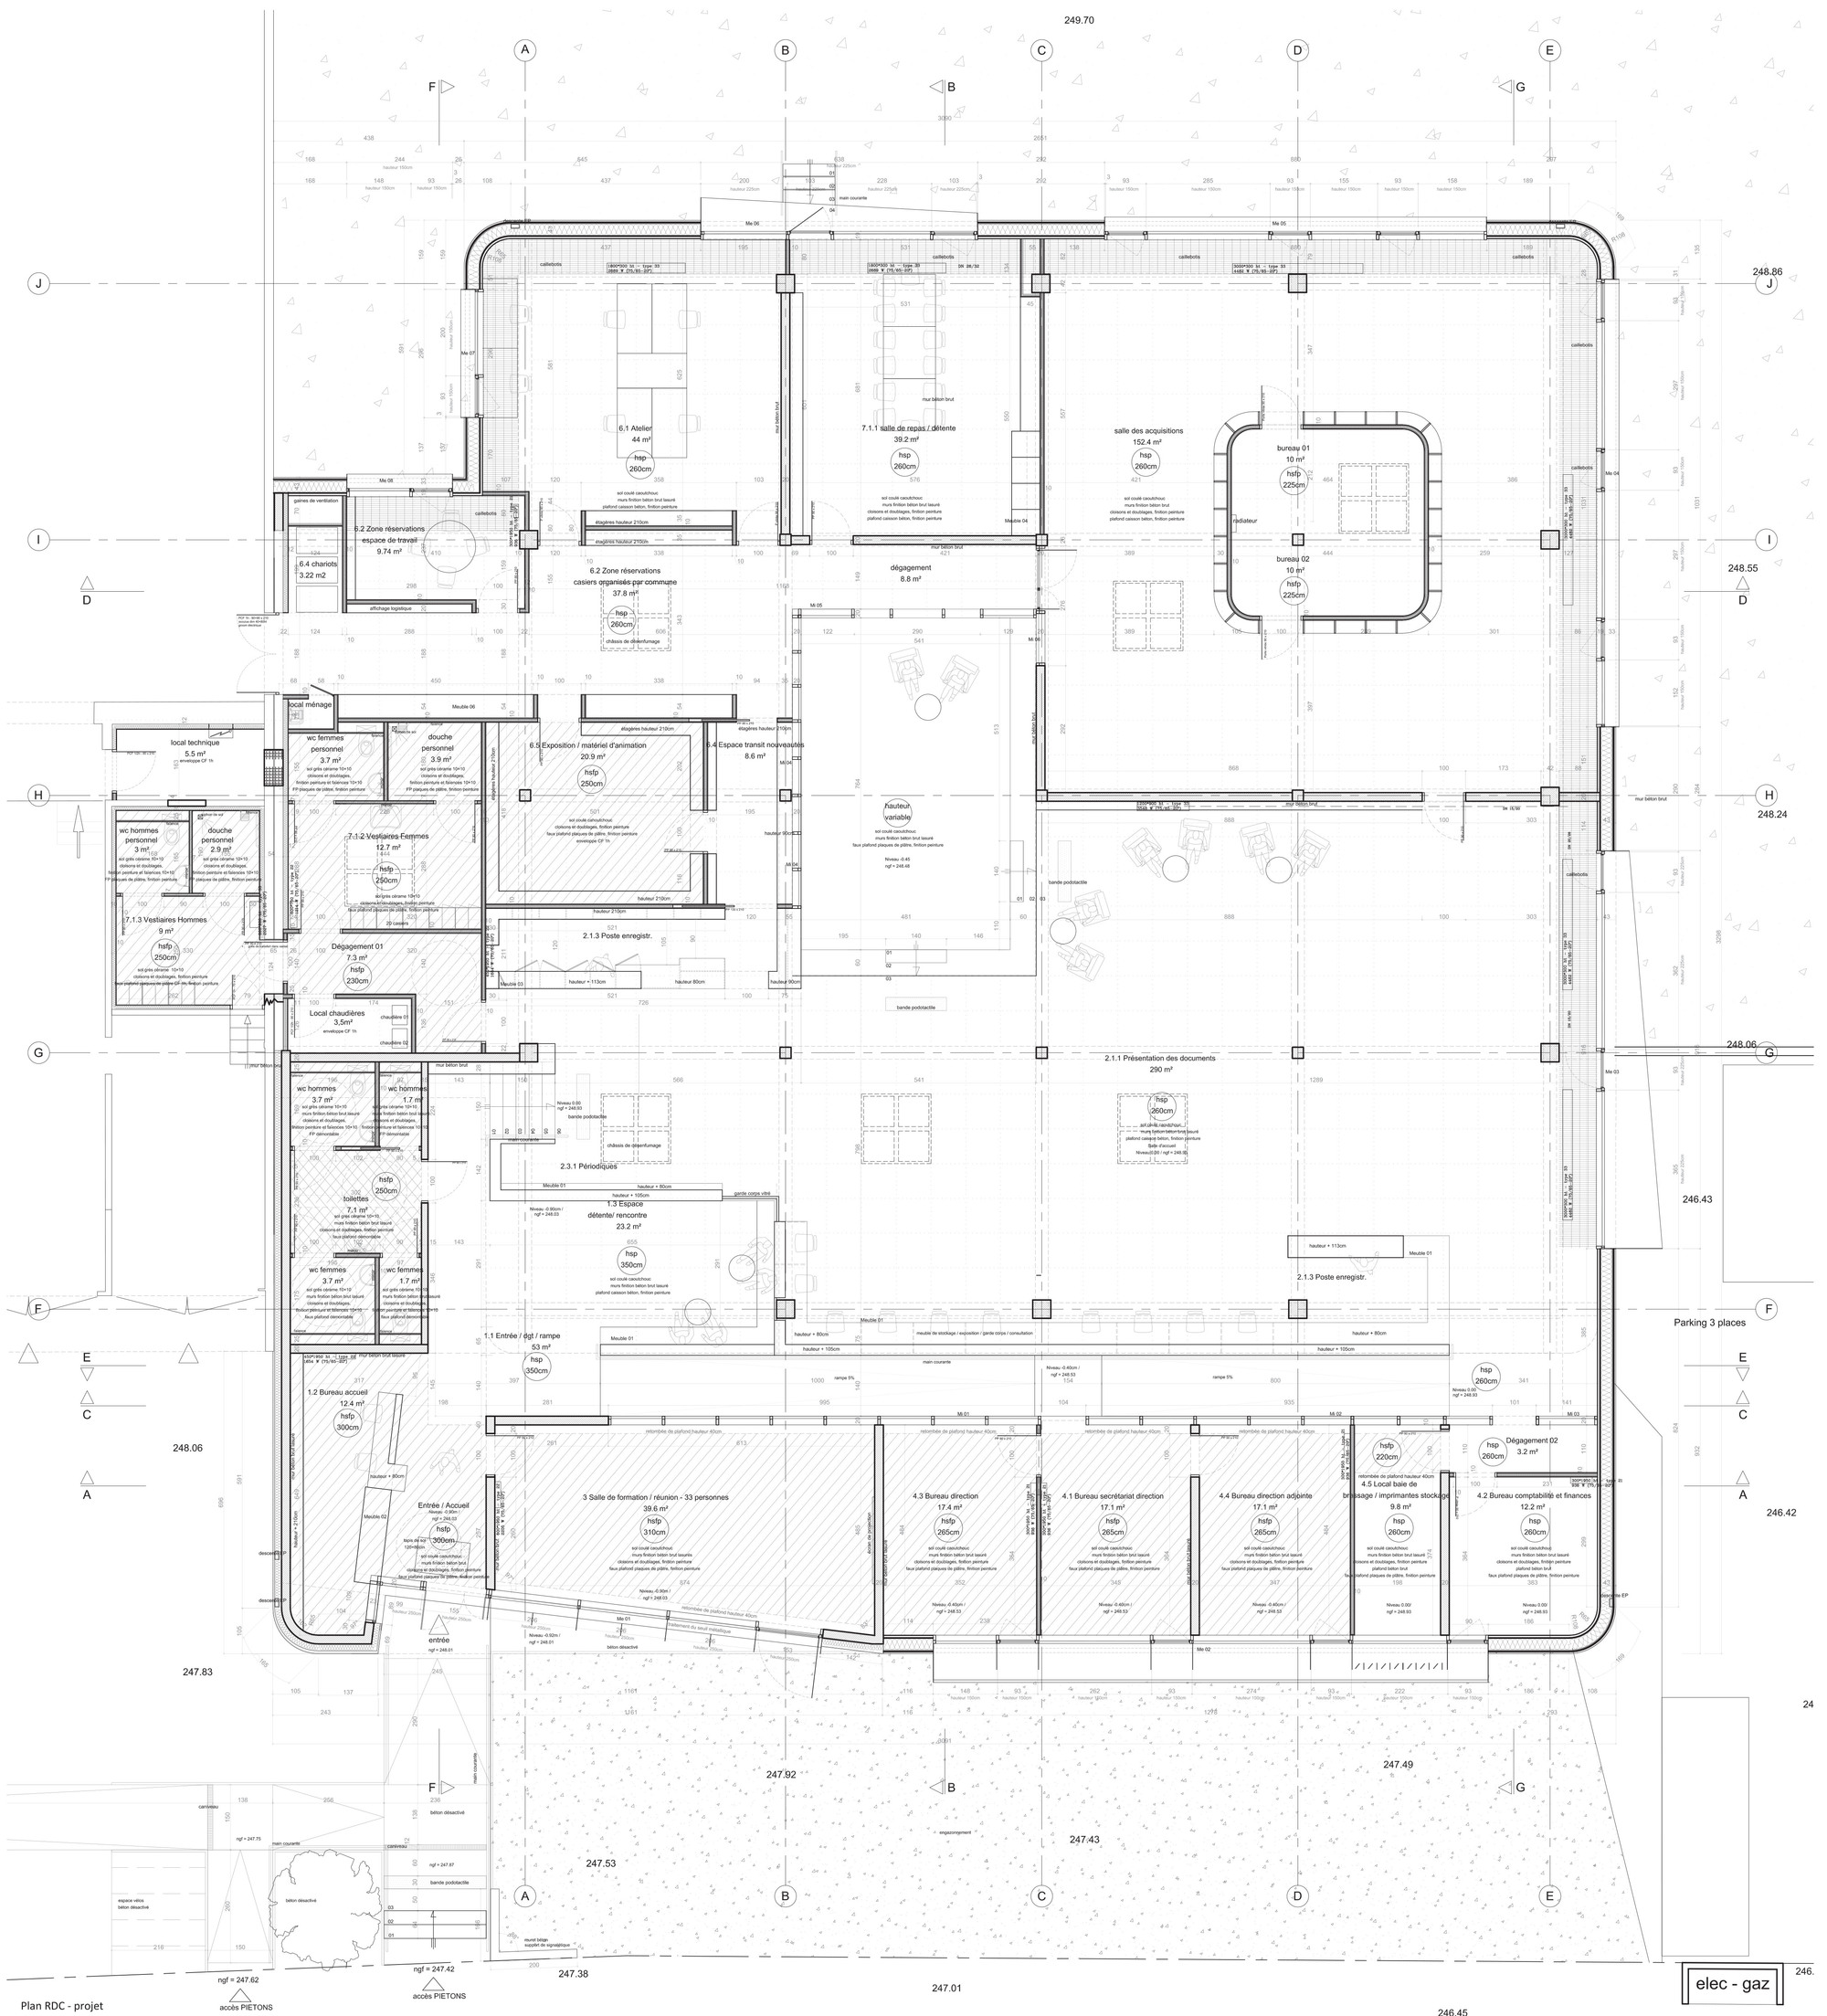 Plan De Travail 350 Cm Gallery Of The Meurthe Et Moselle Departmental Media Library